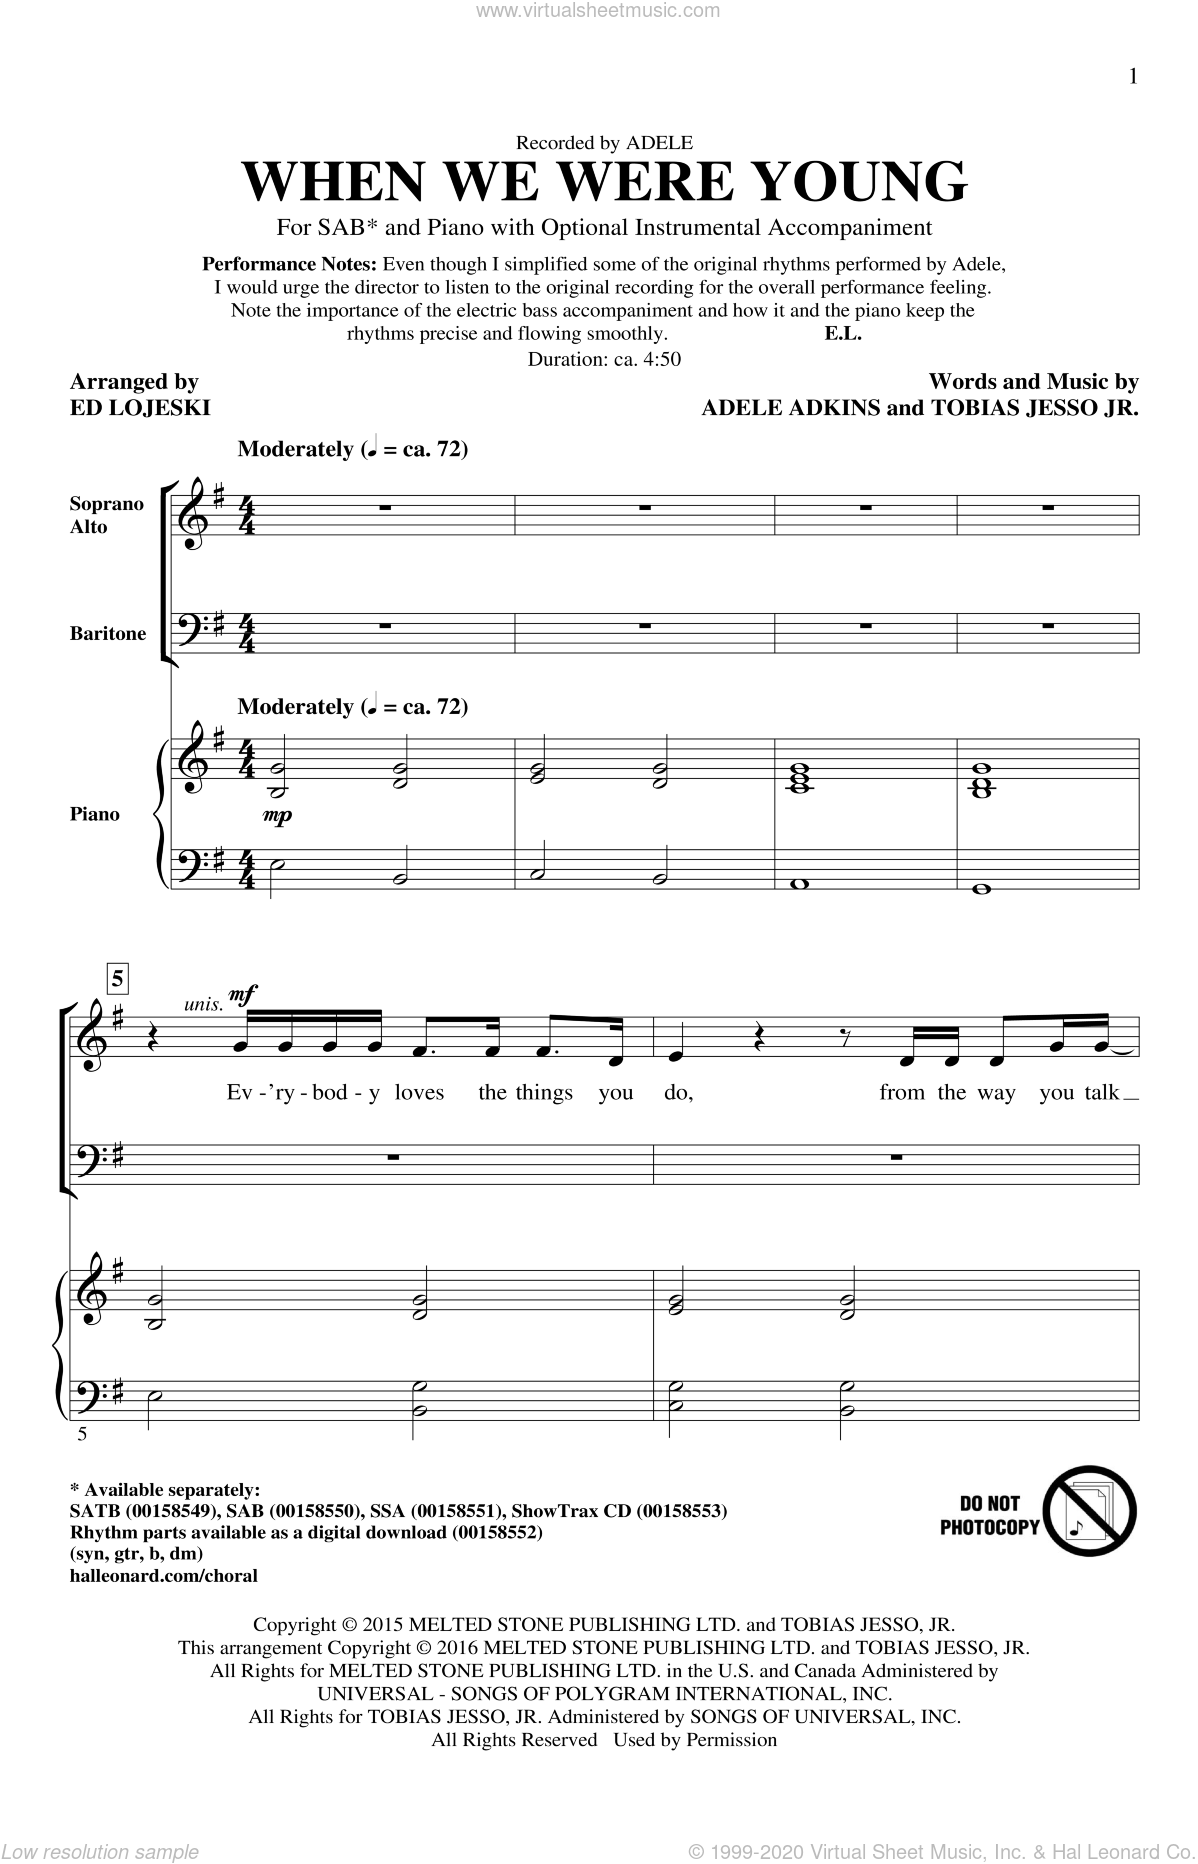 When We Were Young (arr. Ed Lojeski) sheet music for choir (SAB: soprano, alto, bass) by Ed Lojeski, Adele, Adele Adkins and Tobias Jesso Jr., intermediate skill level